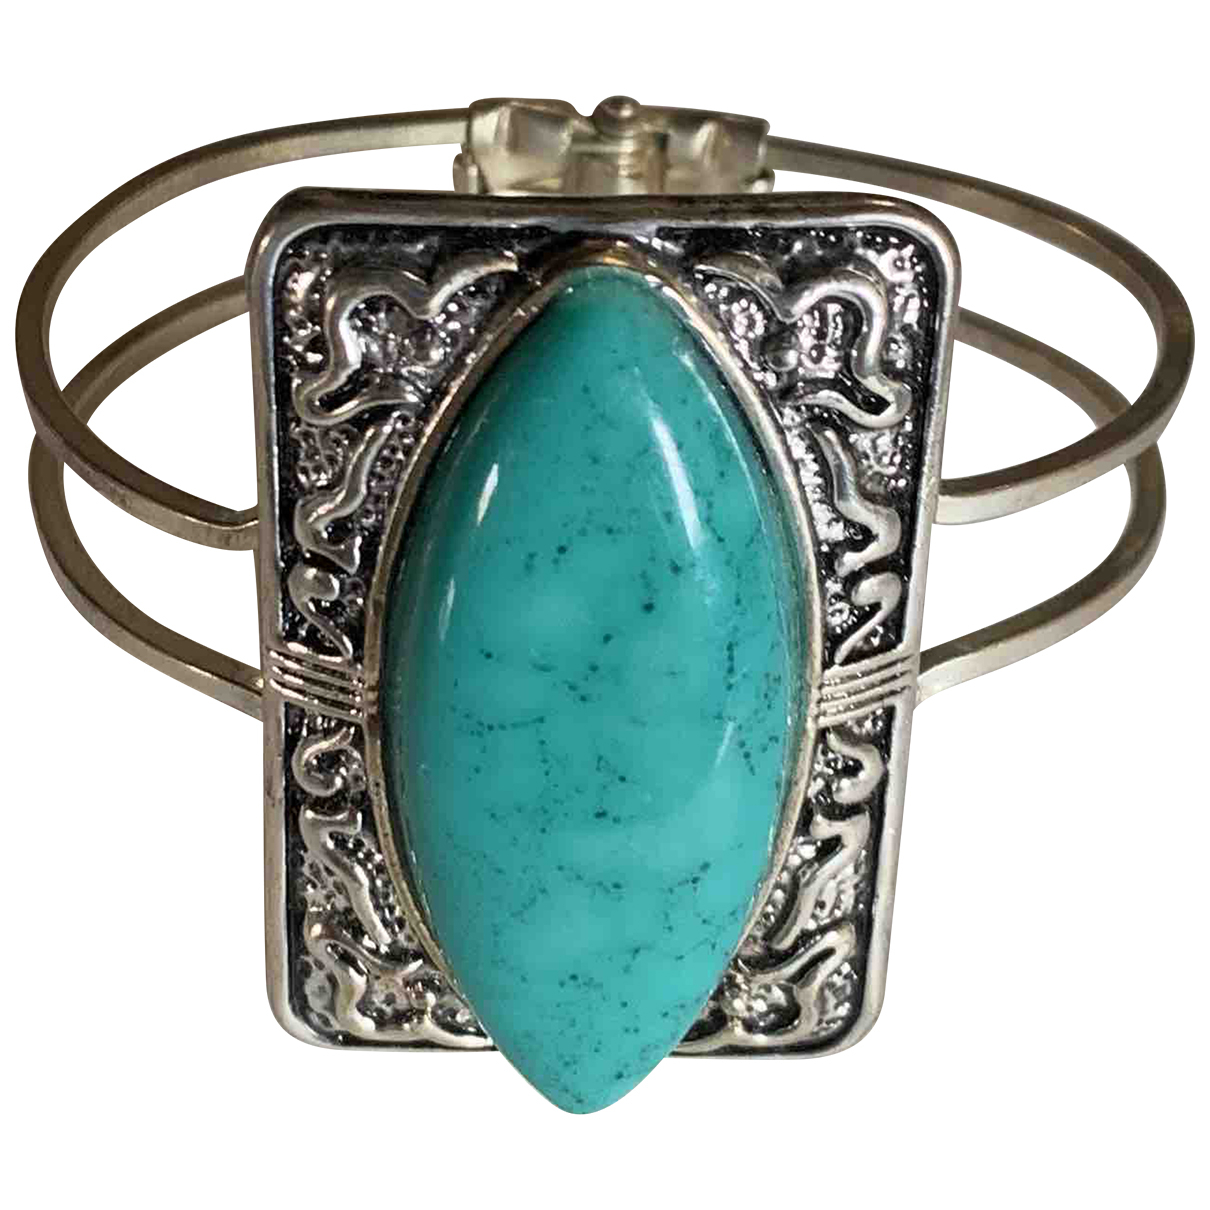 Non Signe / Unsigned Turquoises Armband in  Silber Metall